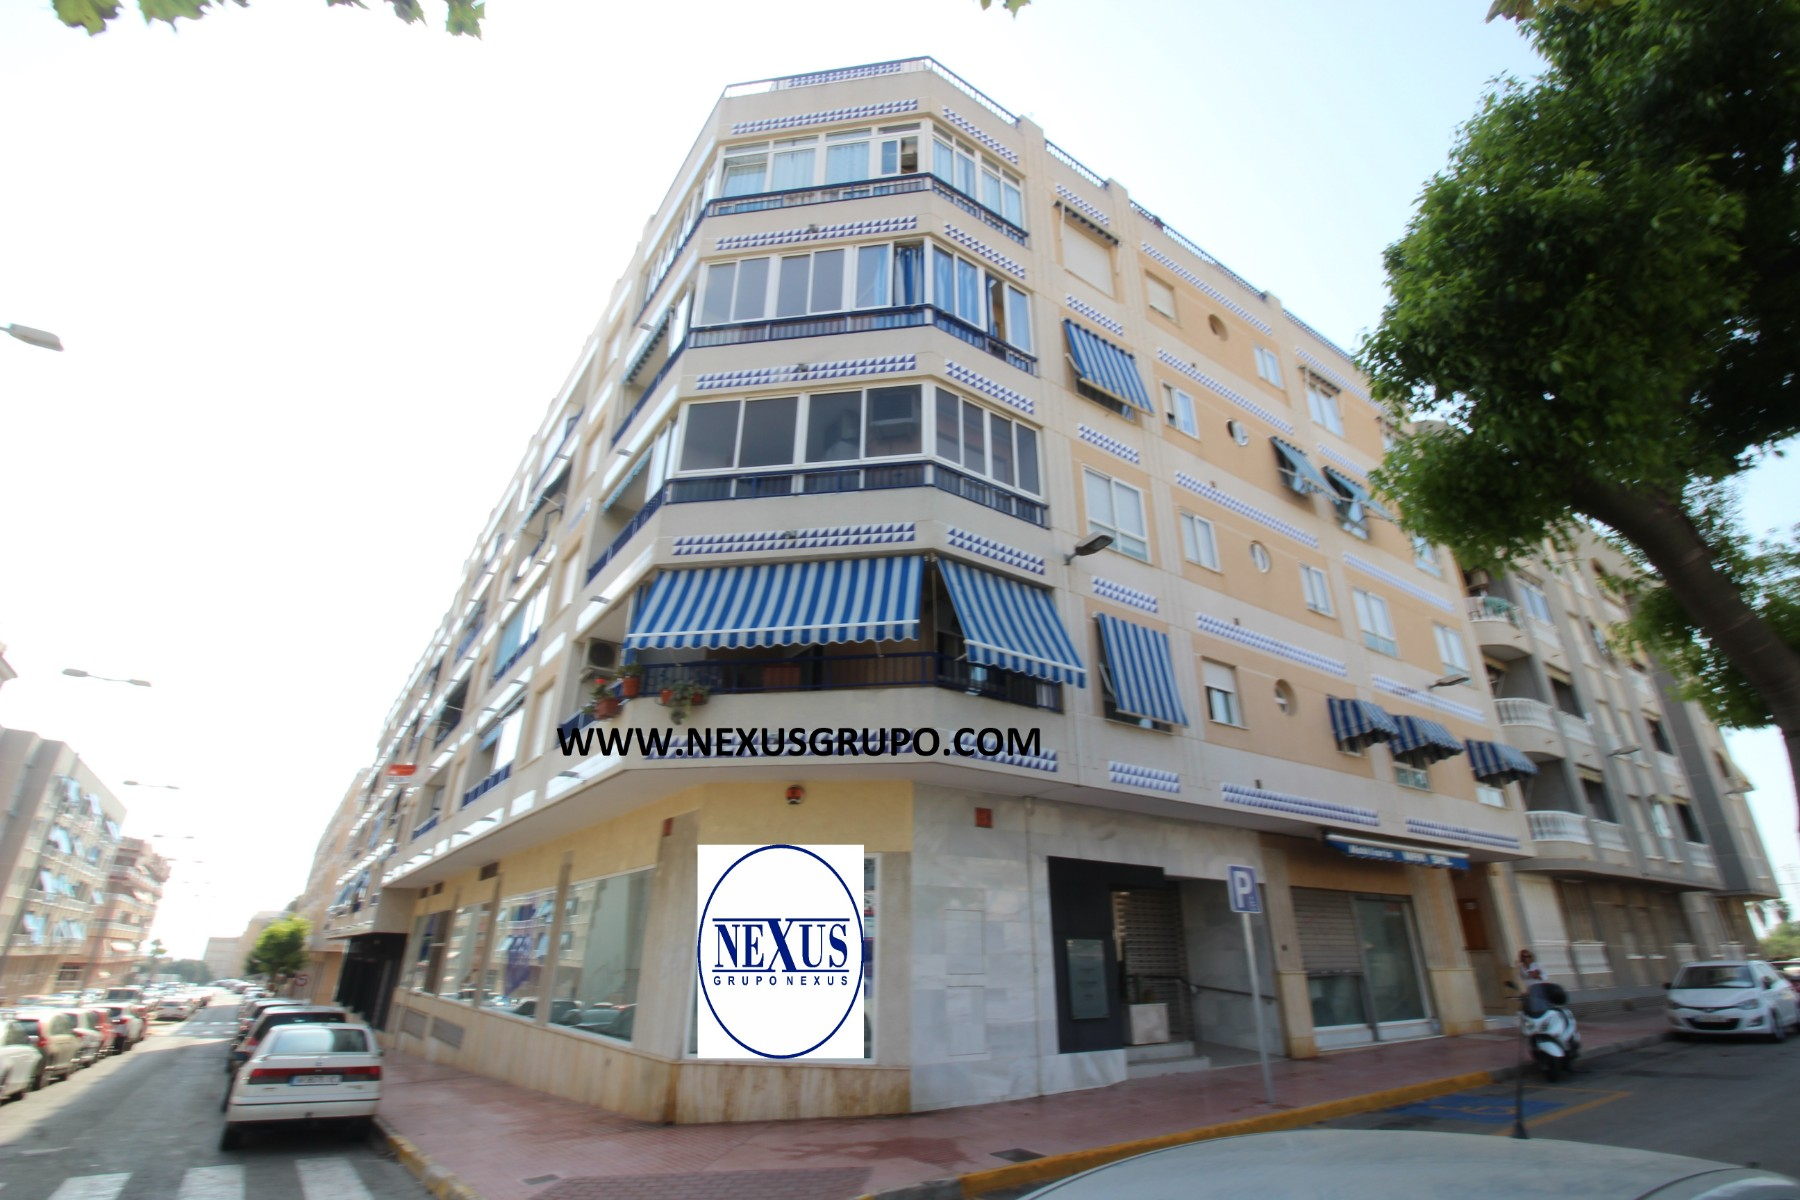 Real Estate Group Nexus, Sells excellent and very spacious apartment in Nexus Grupo